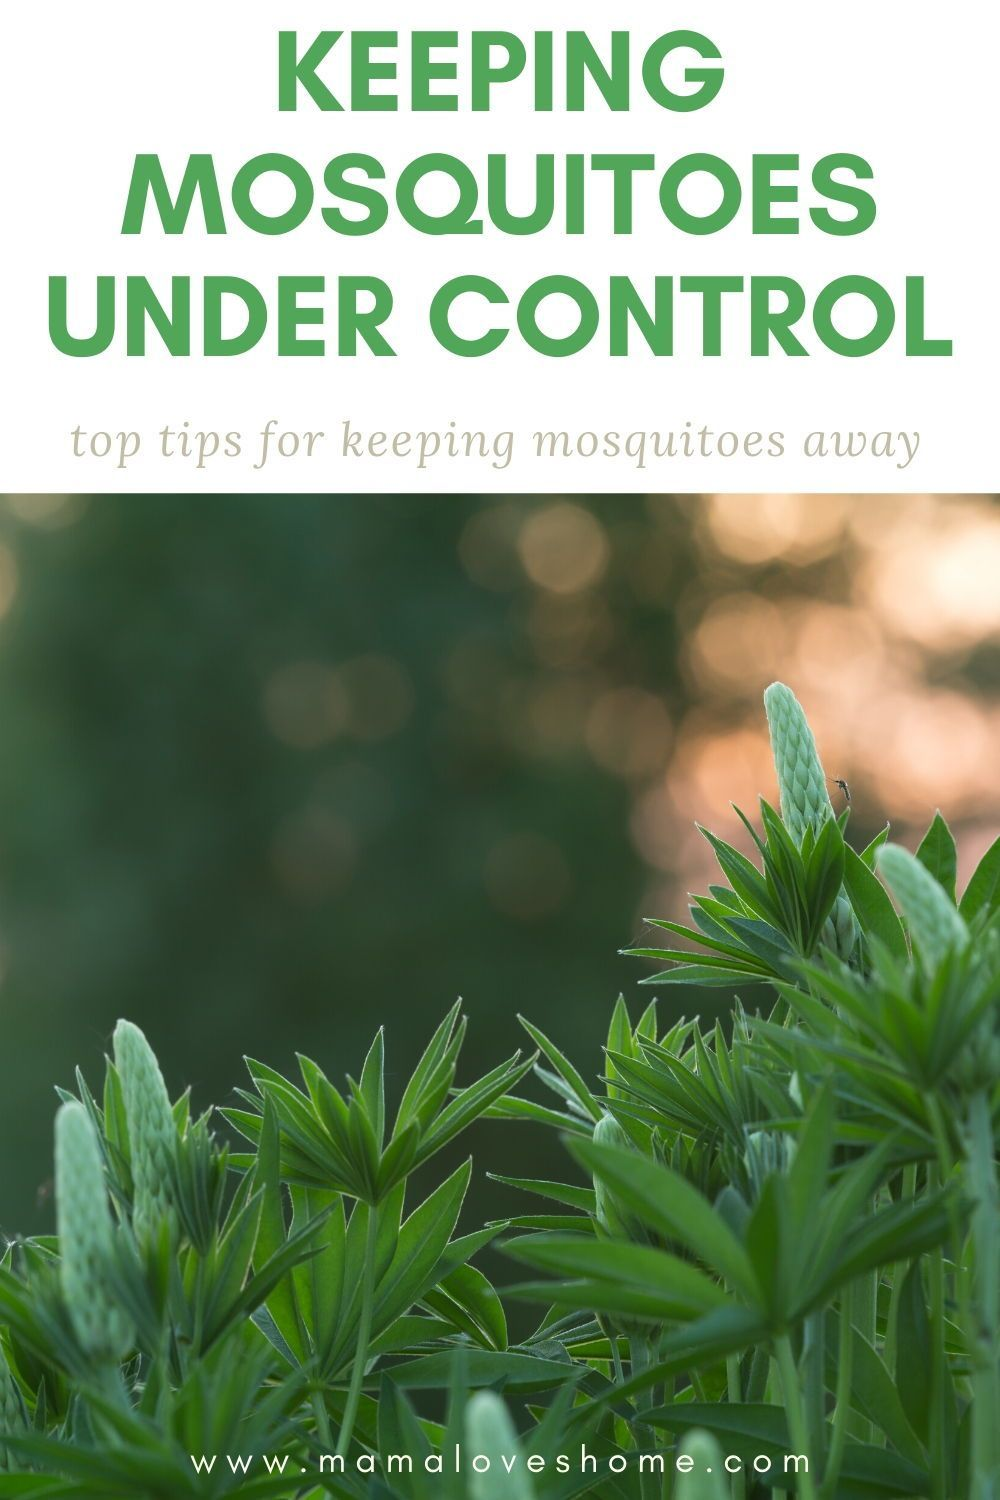 Getting rid of mosquitoes in your yard for good ...